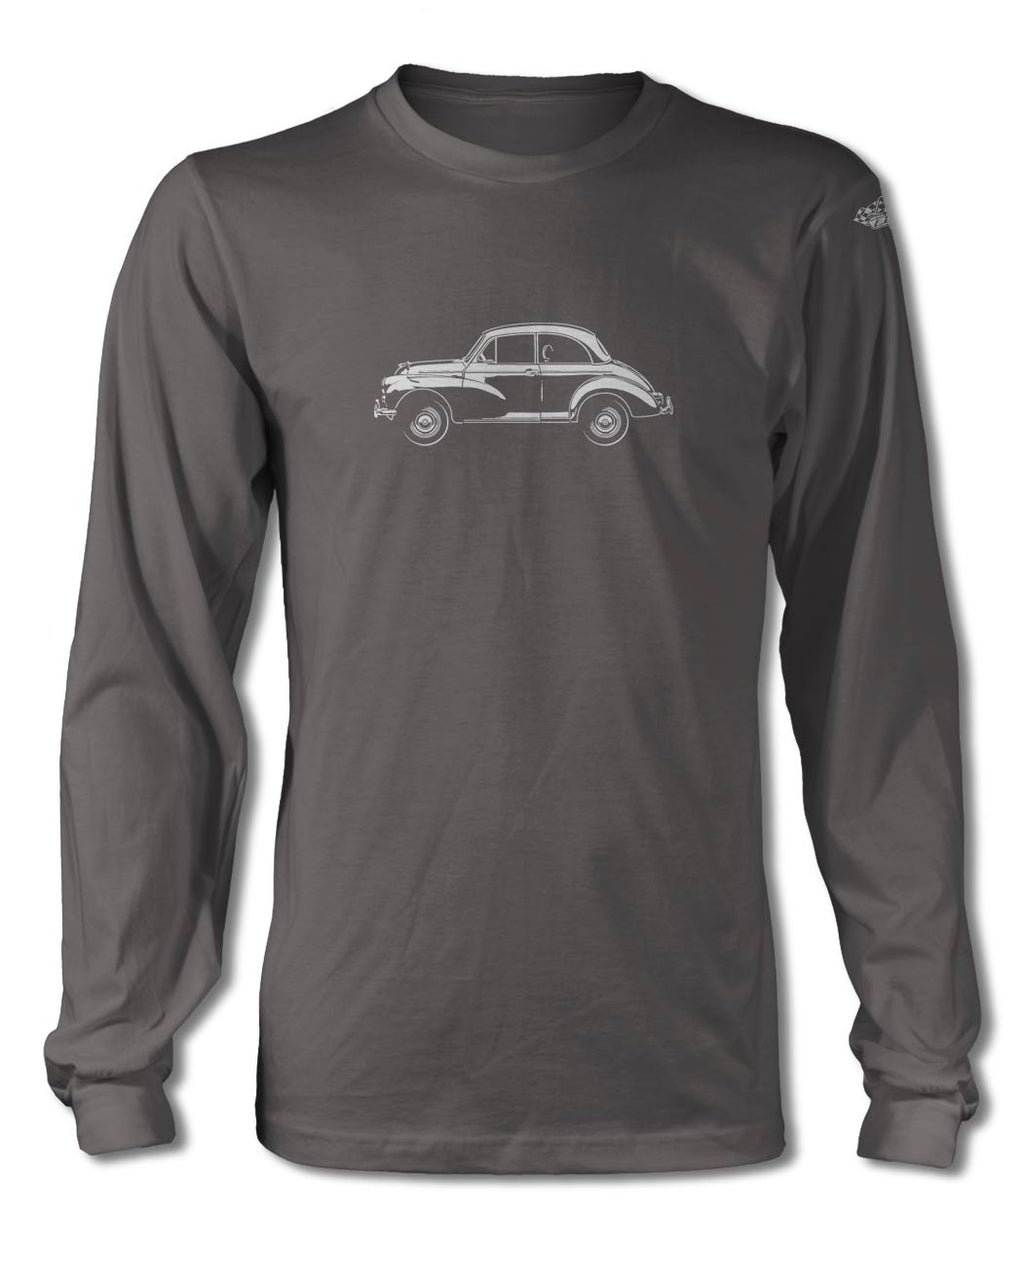 Morris Minor 2-Door Saloon T-Shirt - Long Sleeves - Side View